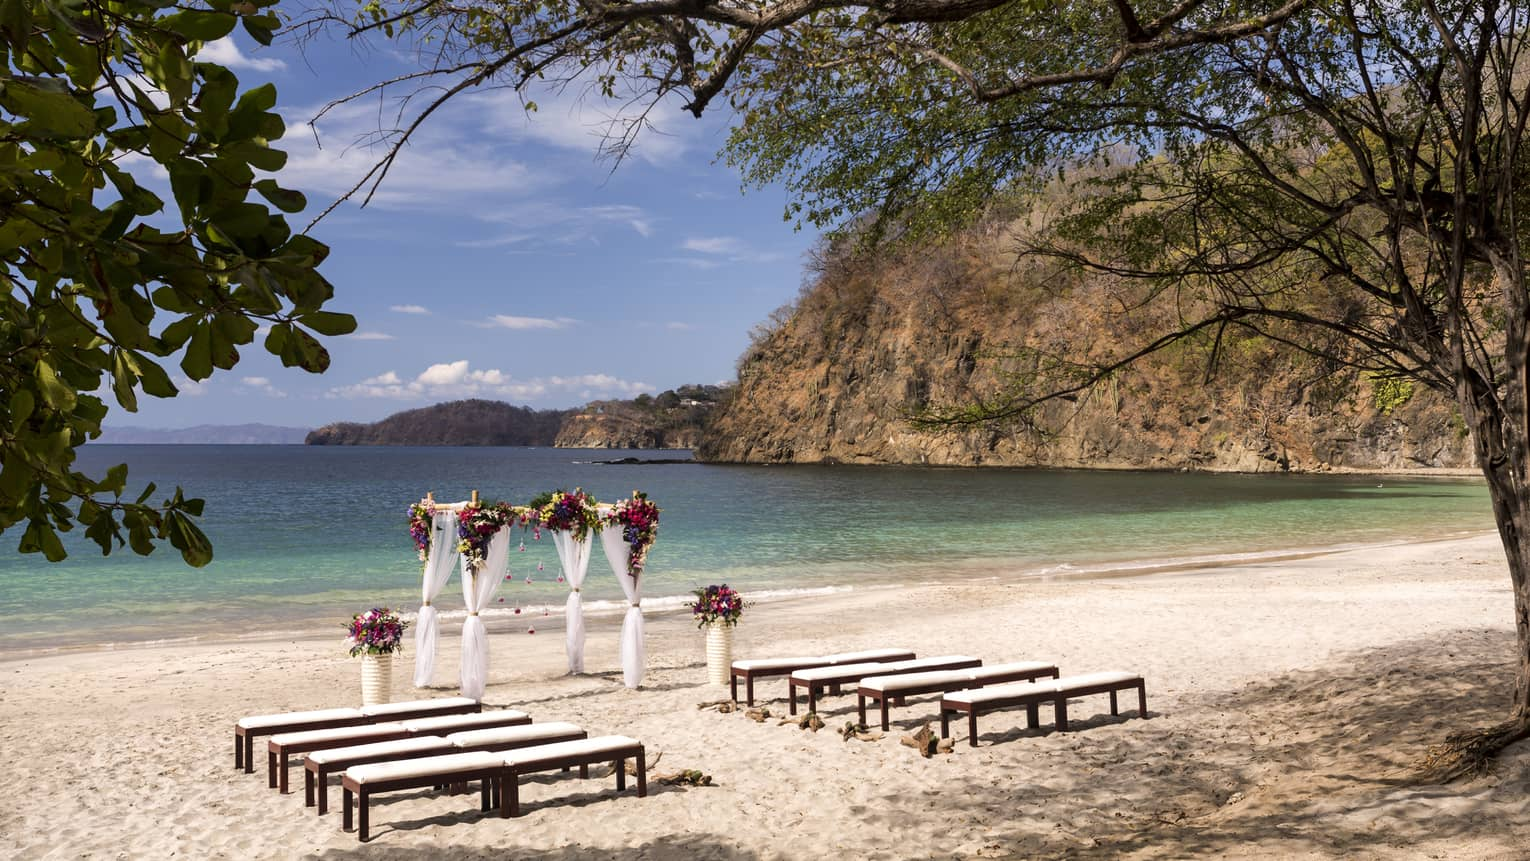 Rows of benches leading to wedding altar with white curtains, flowers on sand beach